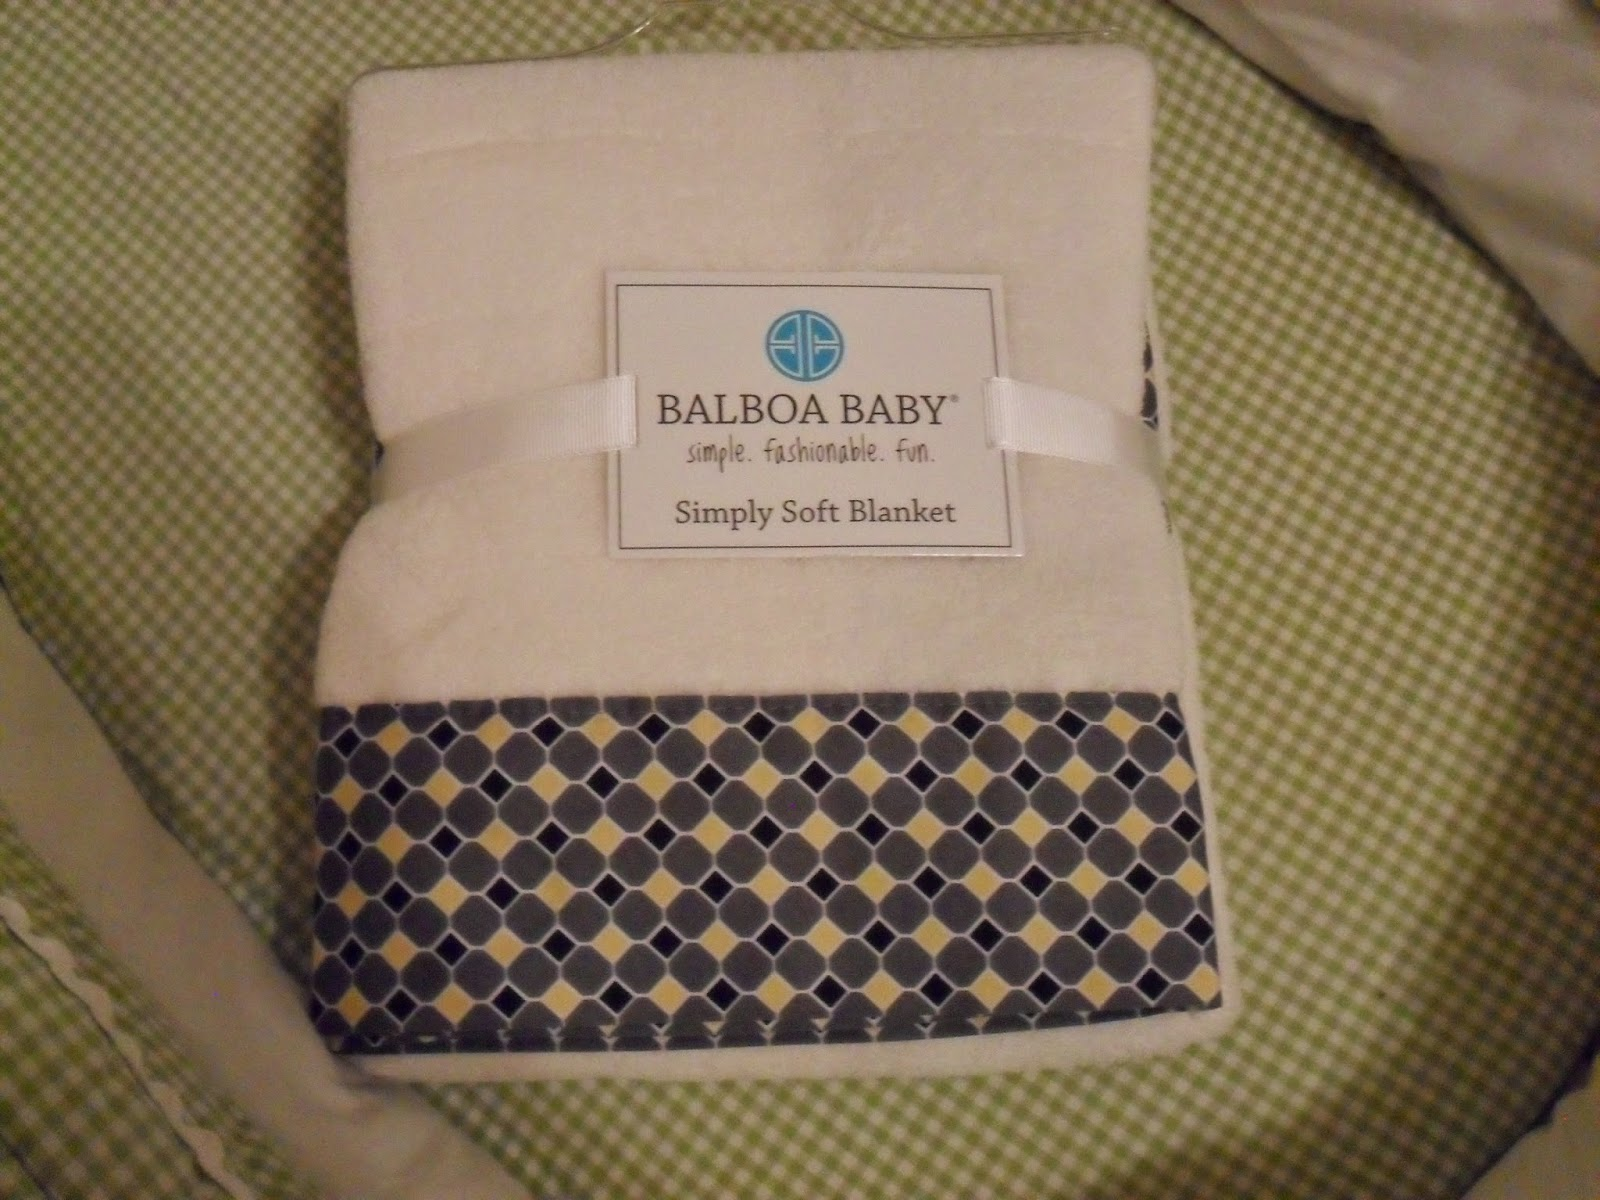 Snuggle Time with Balboa Baby Simply Soft Blanket. Review (Blu me away or Pink of me Event)